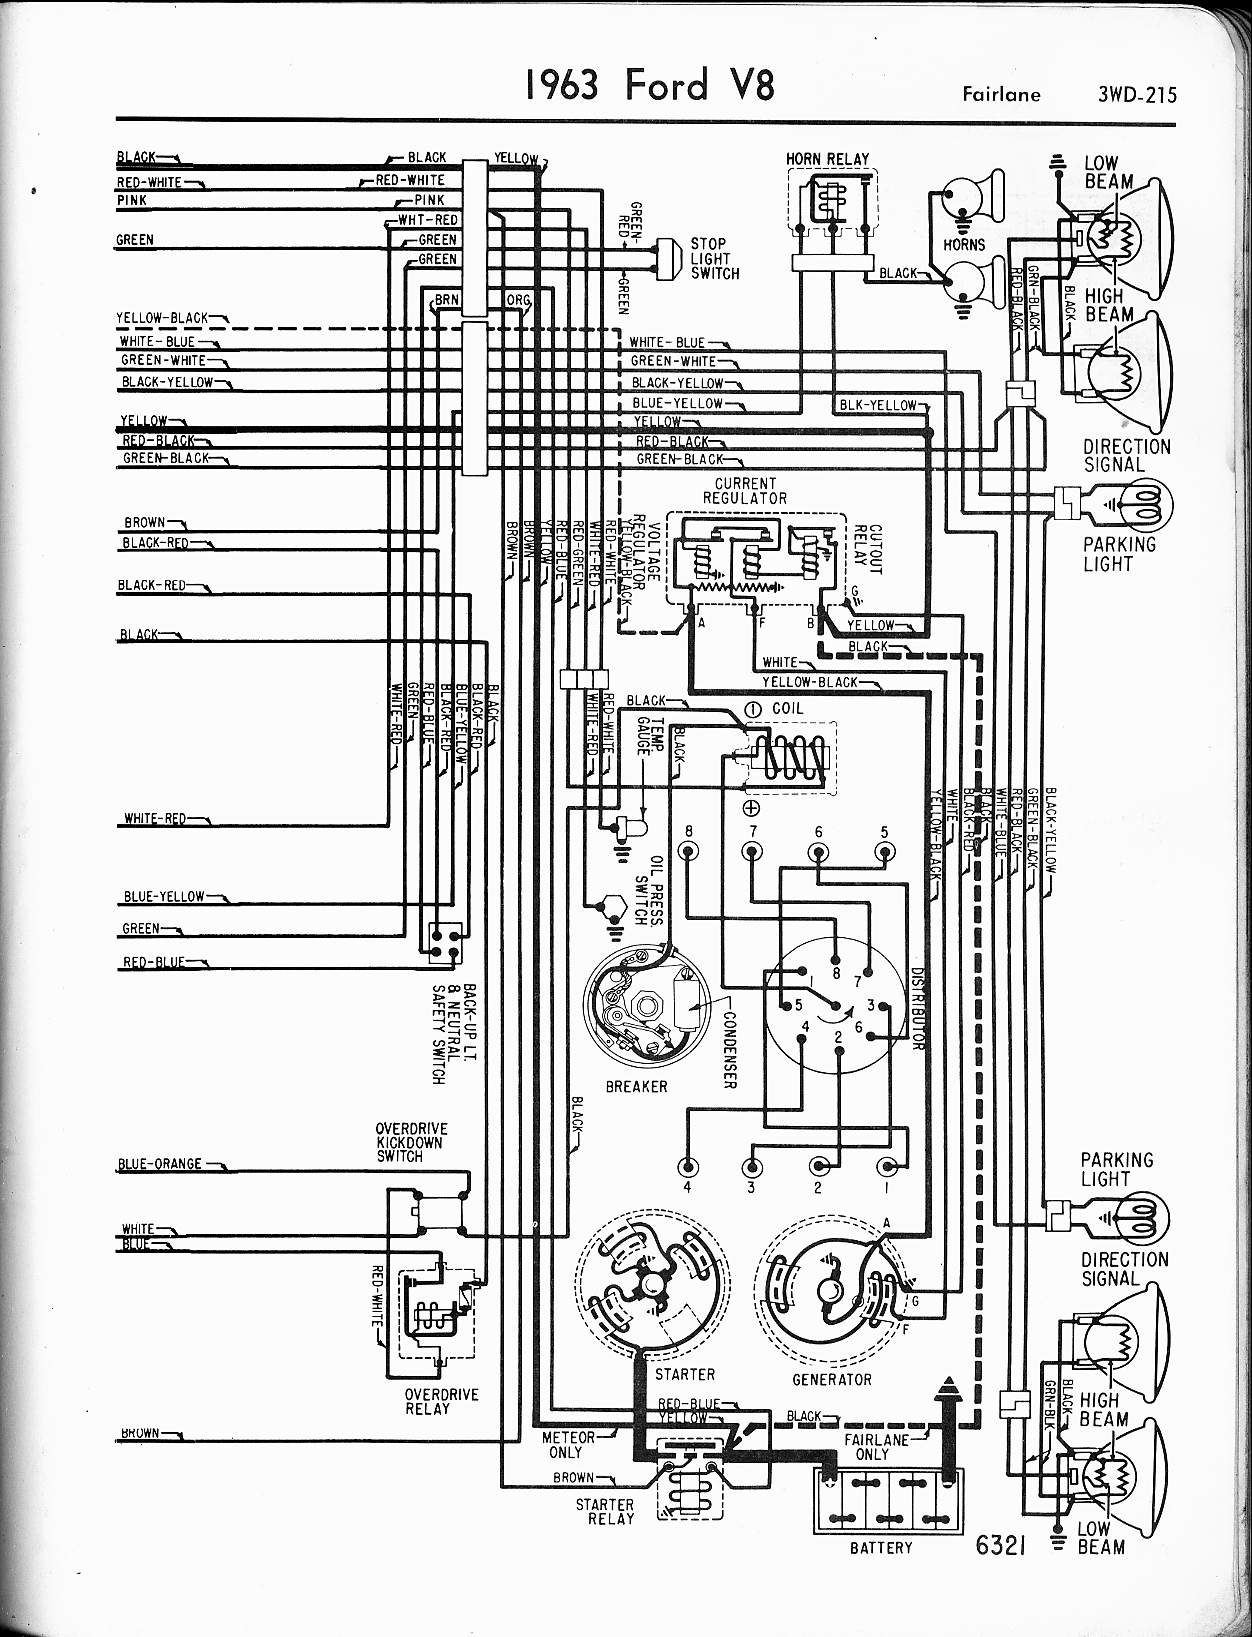 57 65 Ford Wiring Diagrams Cat Fork Lift Ignition Switch Diagram 1963 V8 Fairlane Right